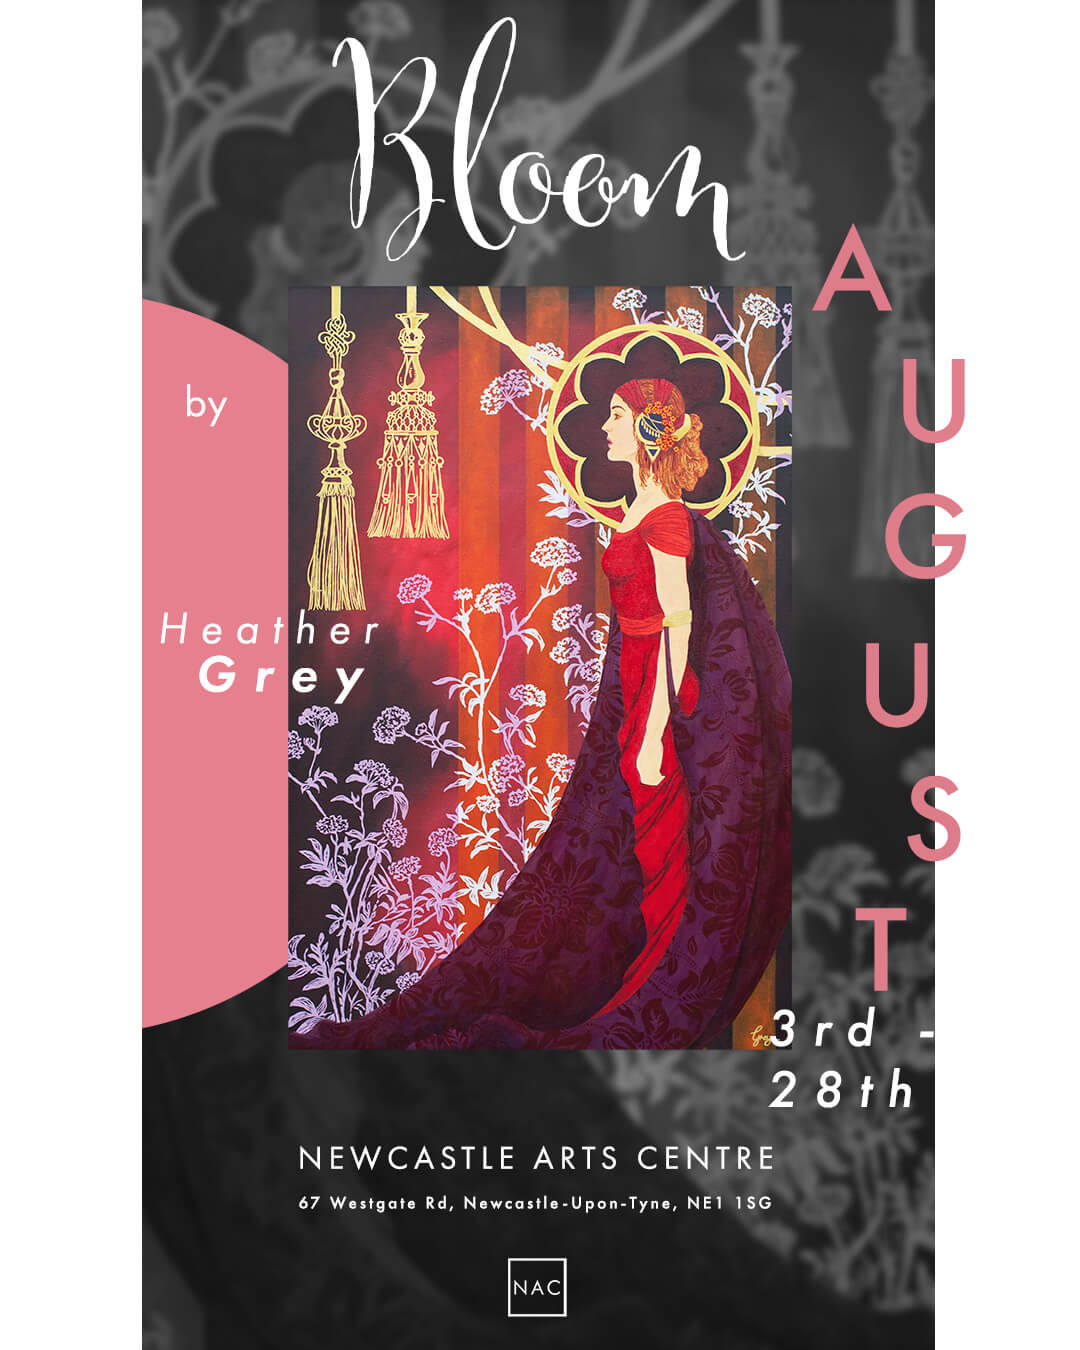 Heather-Grey-Bloom-Exhibition-Poster-Newcastle-Arts-Centre